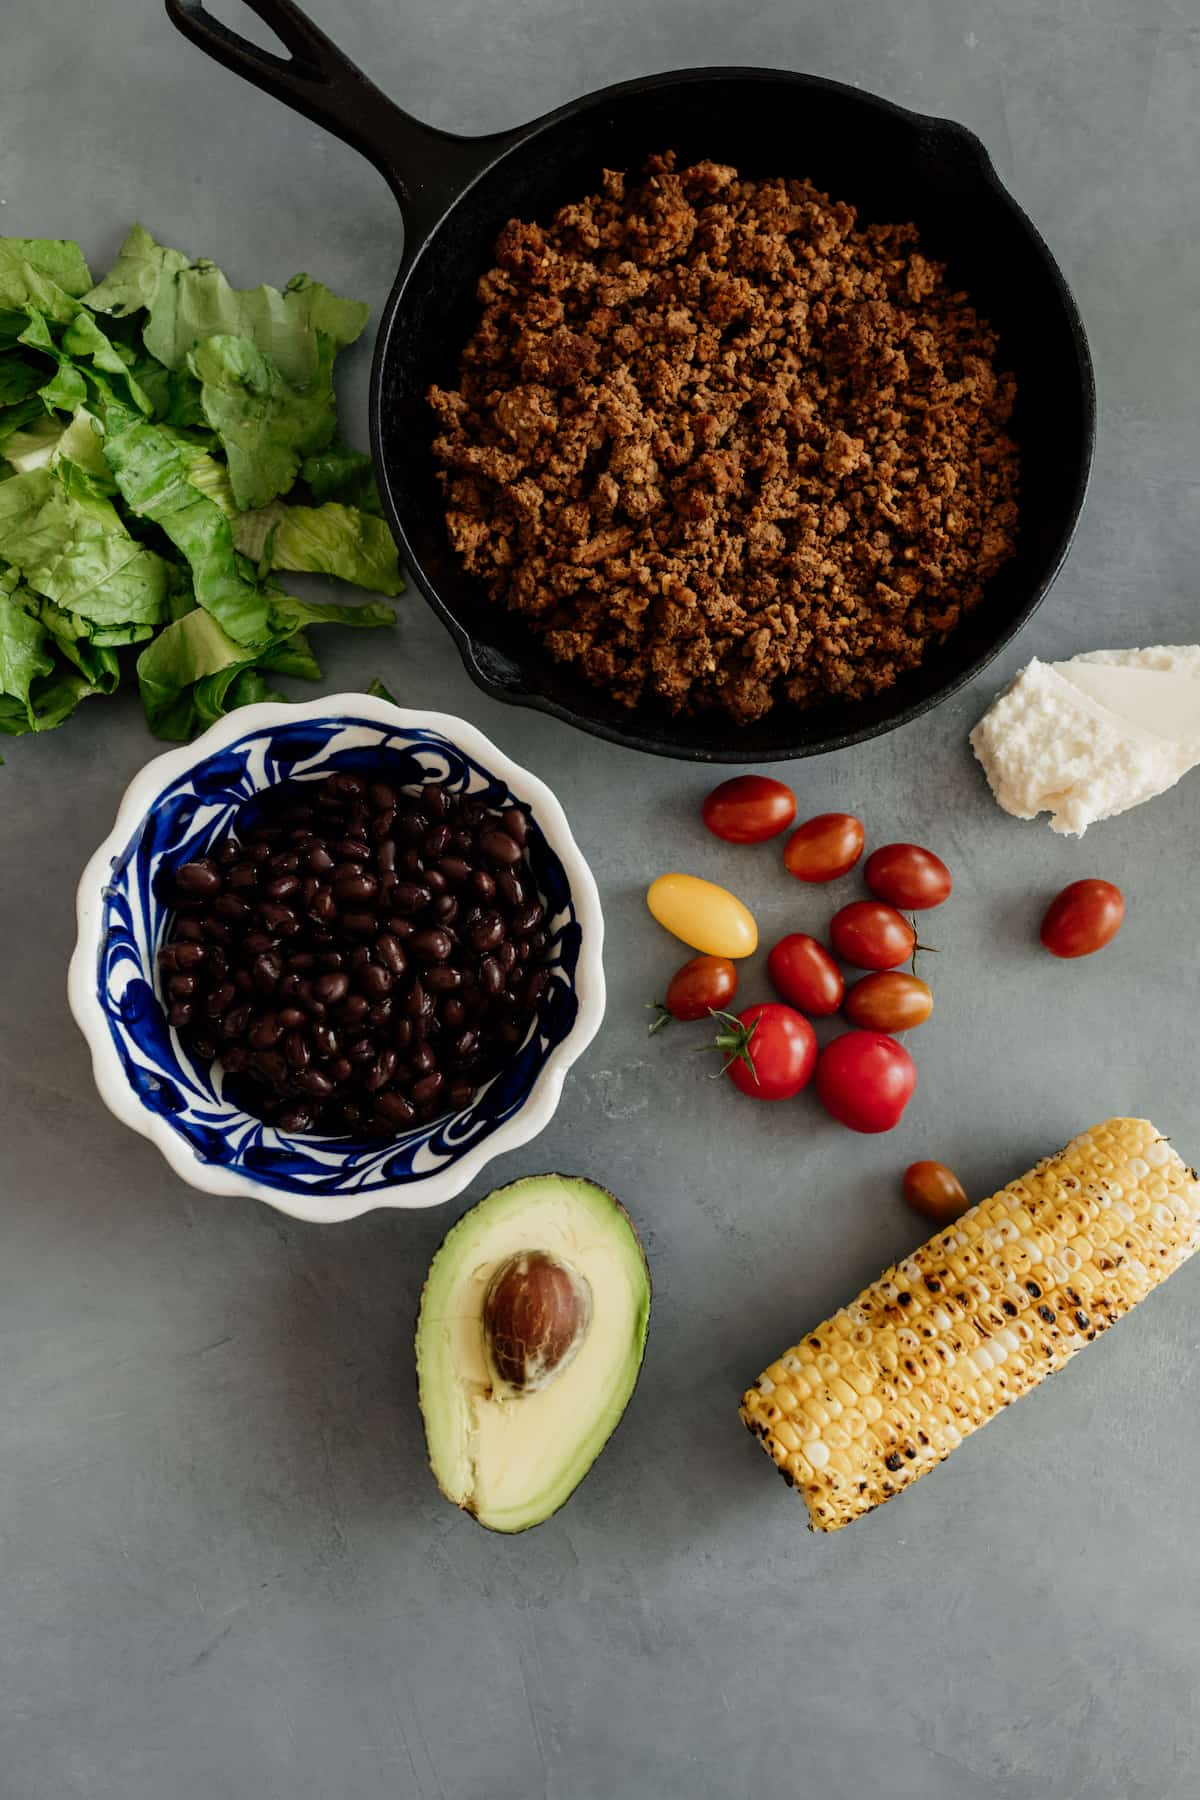 skillet with ground bison and ingredients for a taco salad - corn, avocado, tomatoes, black beans